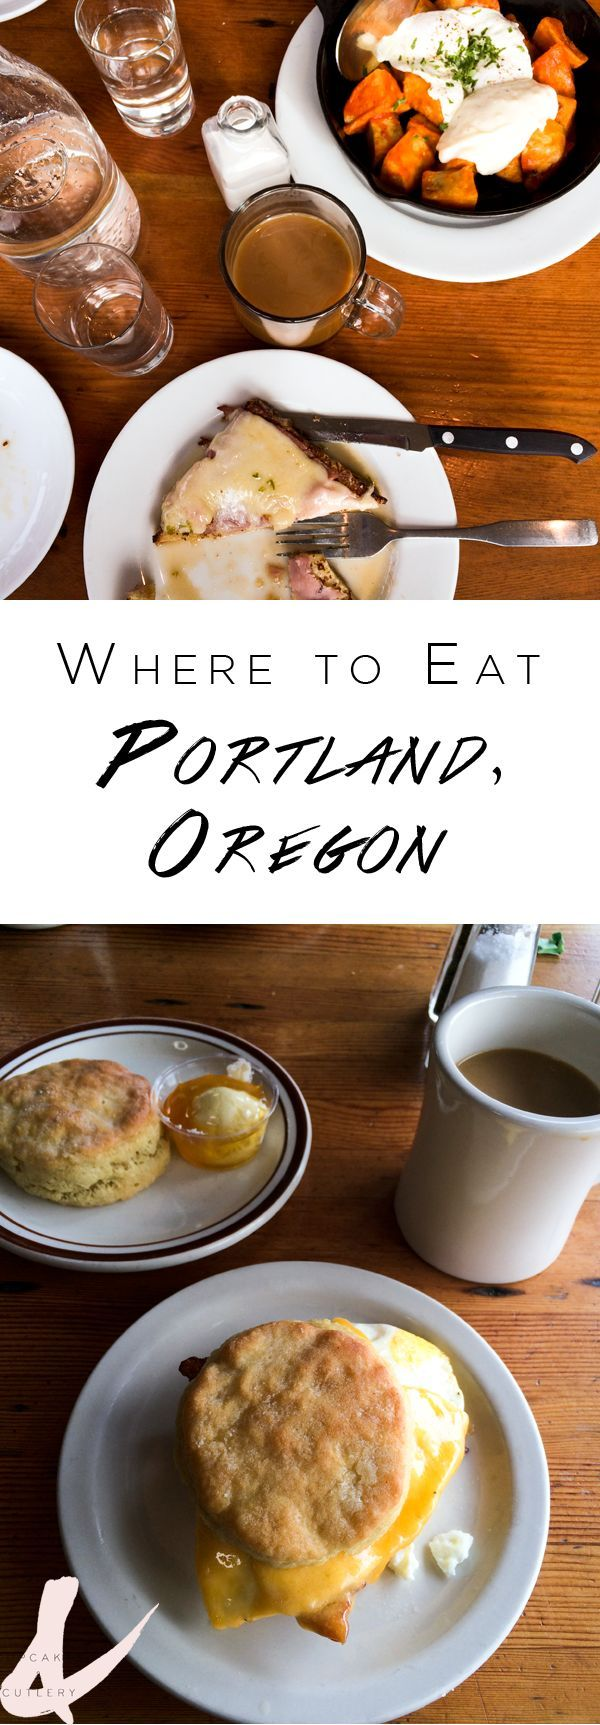 If you are a foodie, you'll want to pin this post for your next visit! Portland, Oregon has so many great restaurants and food culture. If you love to eat, this is where you'll want to travel to next.